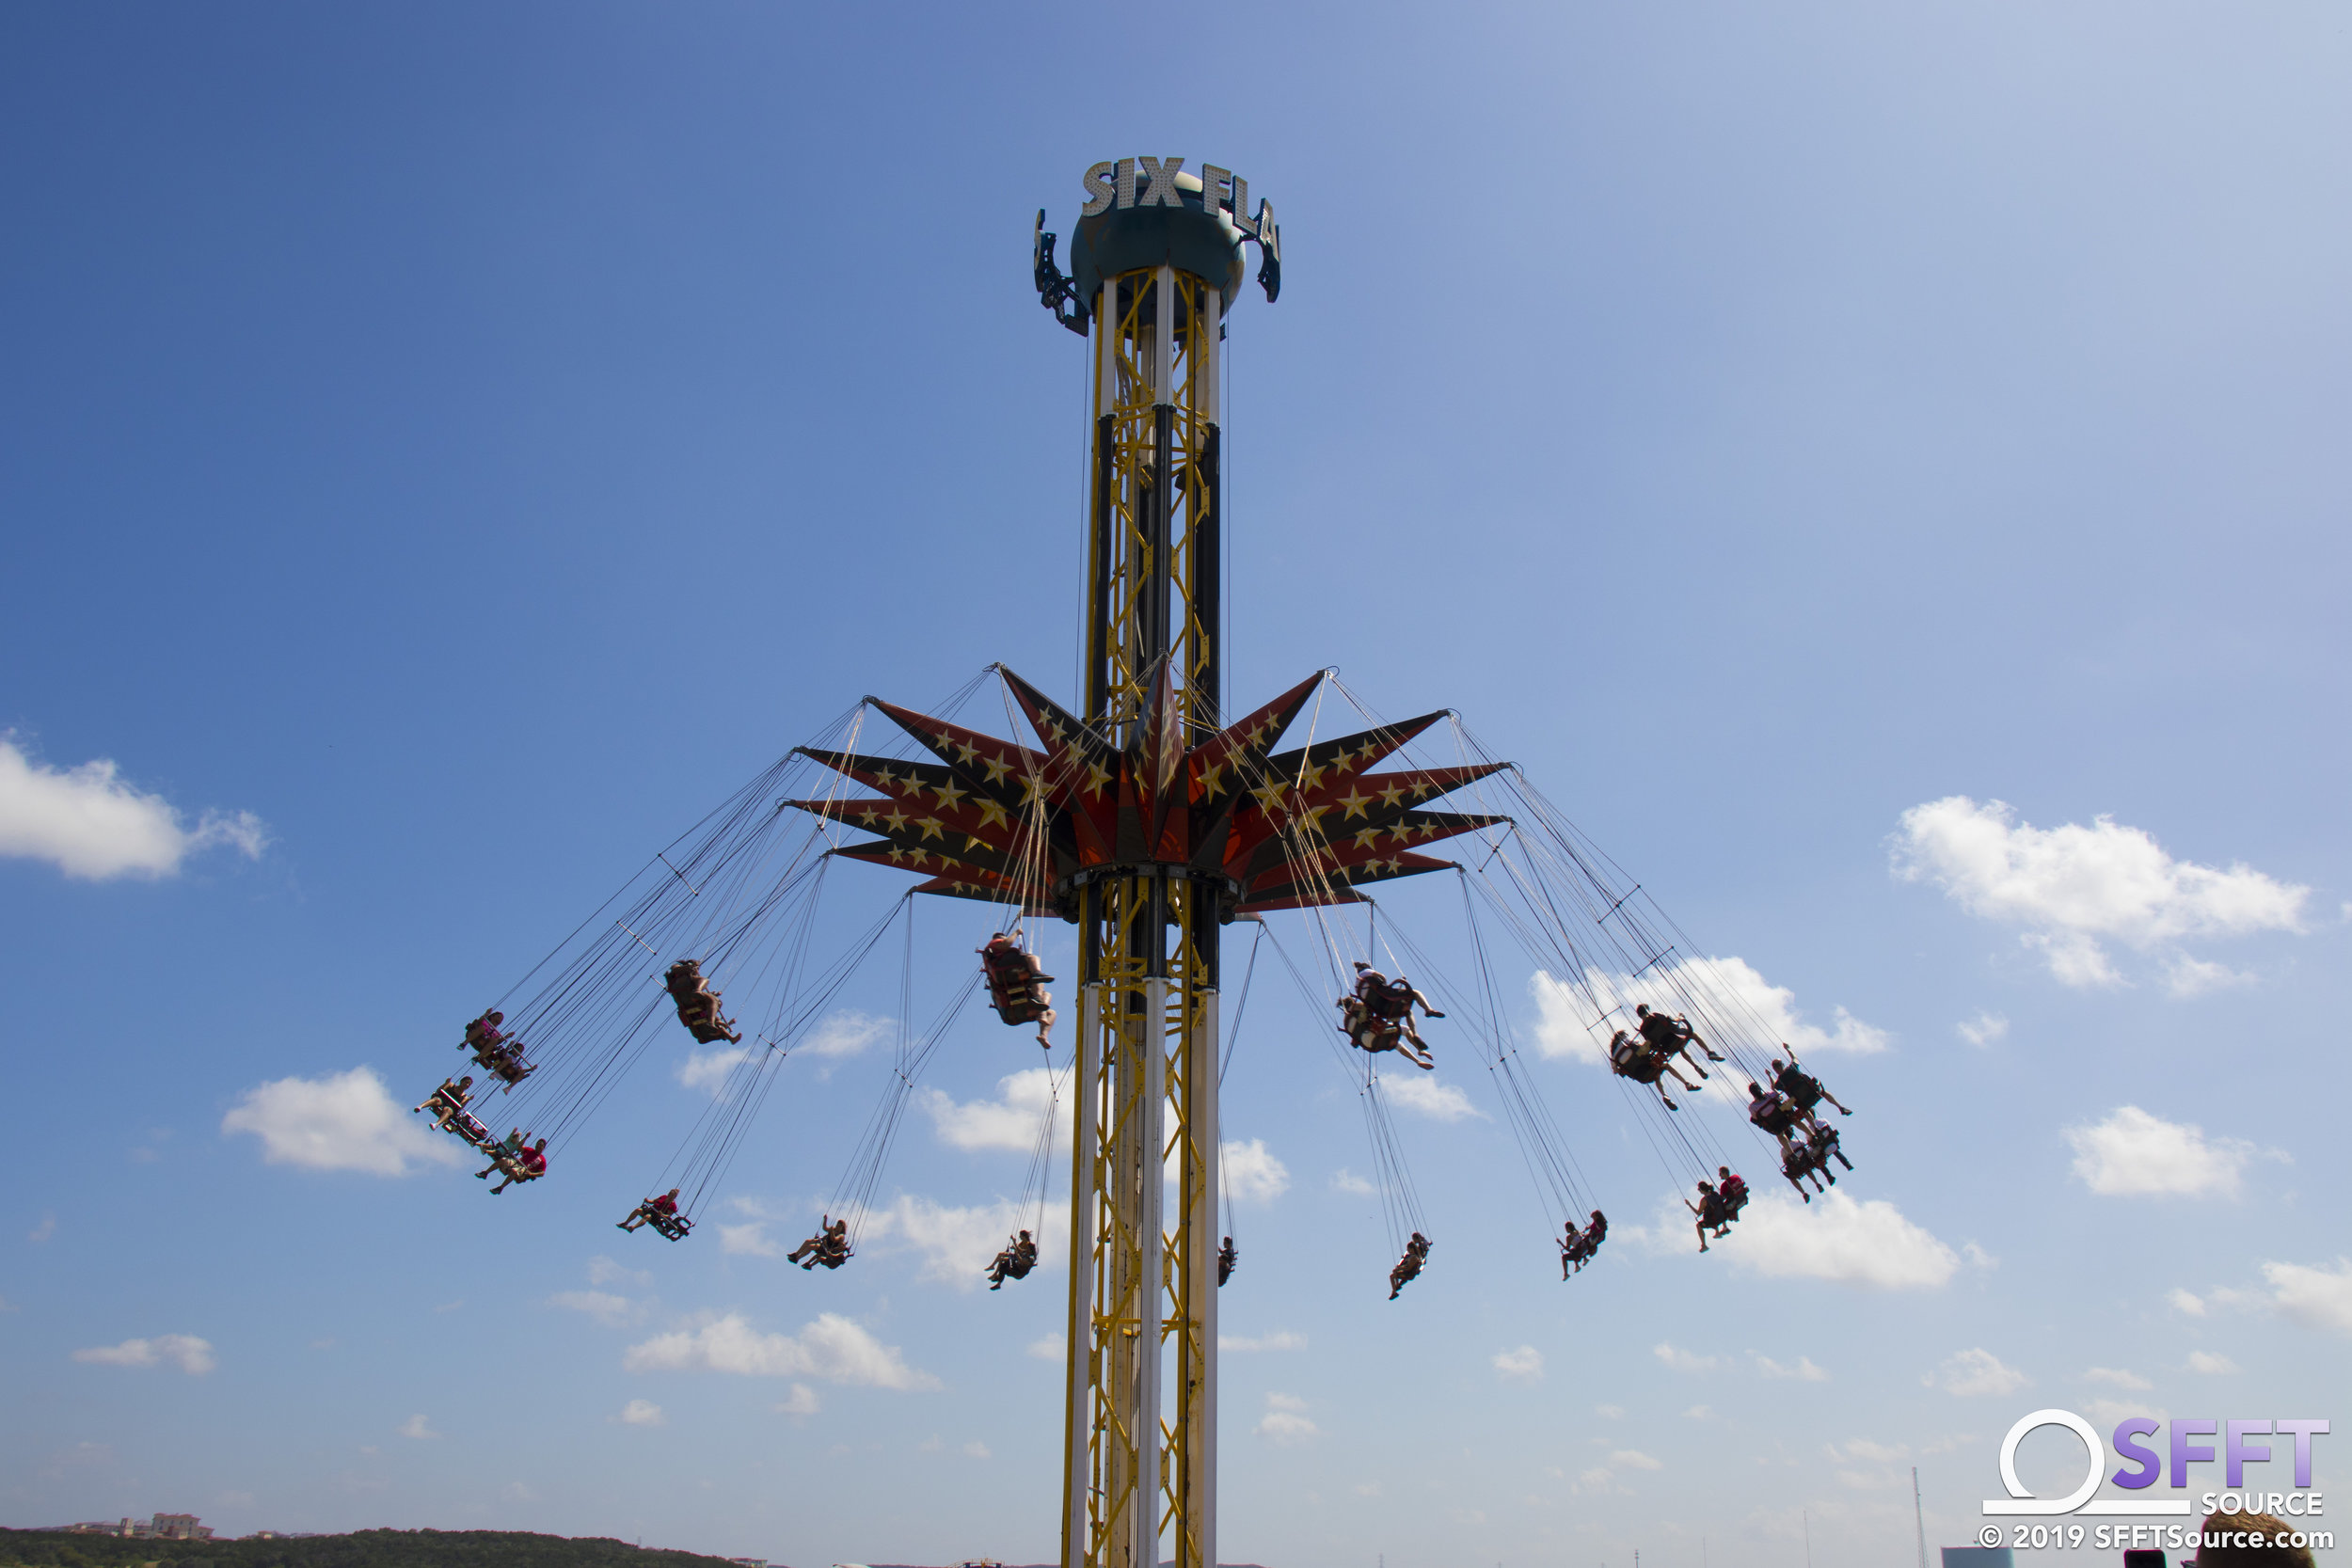 A view of SkyScreamer from atop the quarry wall.